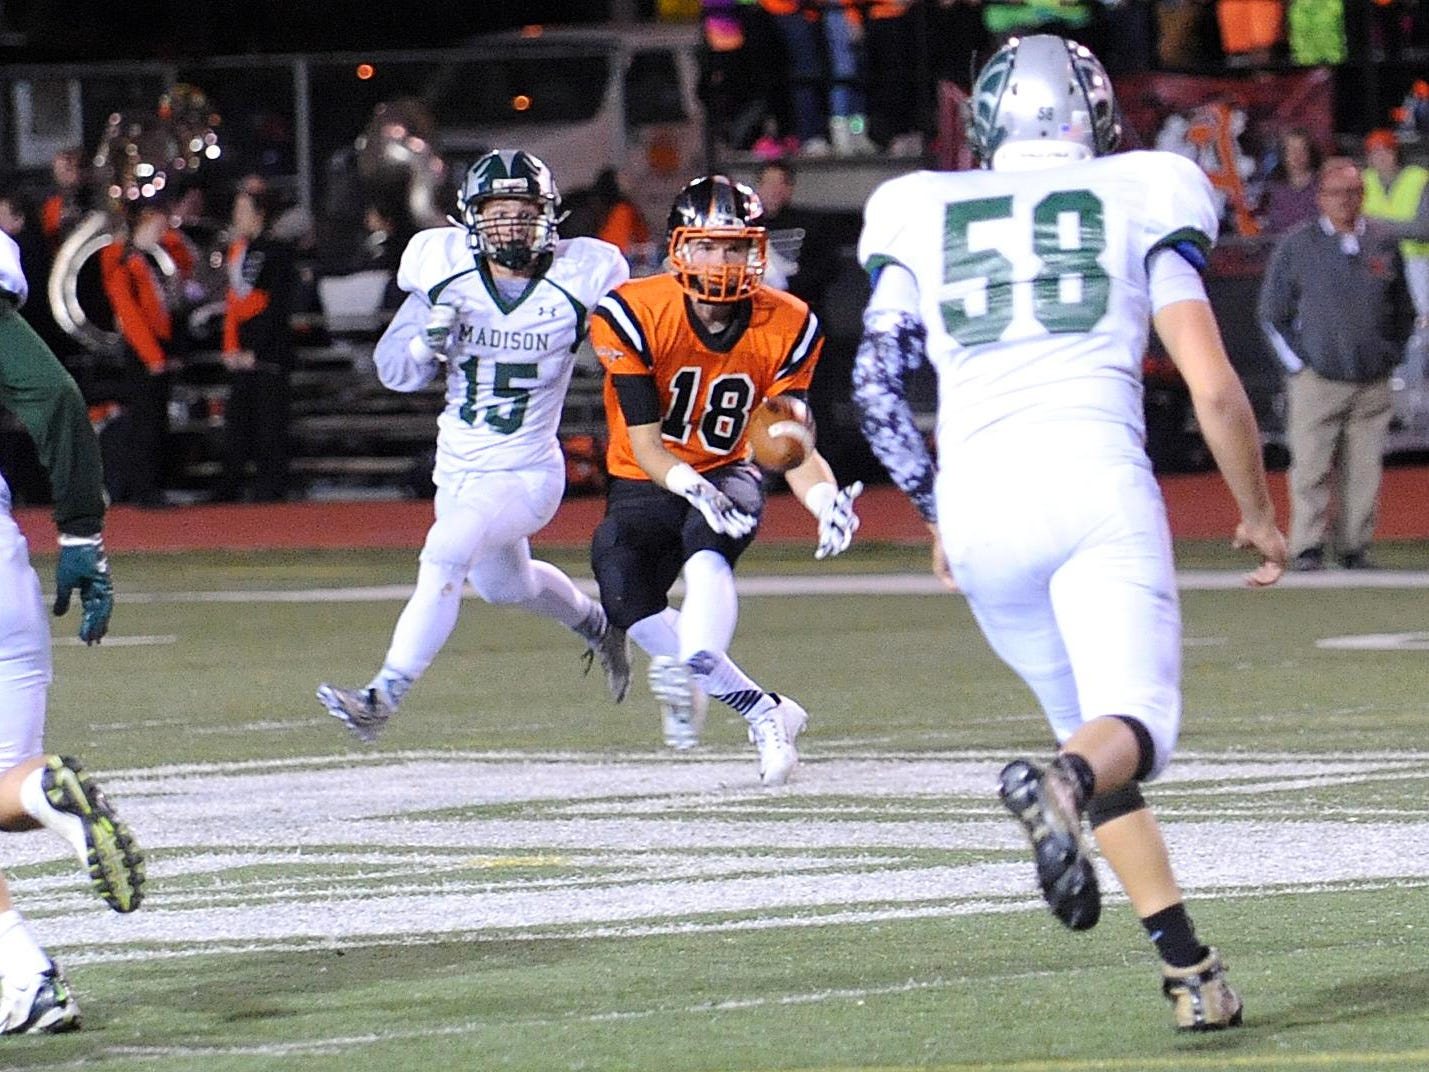 Ashland's Nick Bernhard receives a pass Friday night during their game against Madison.